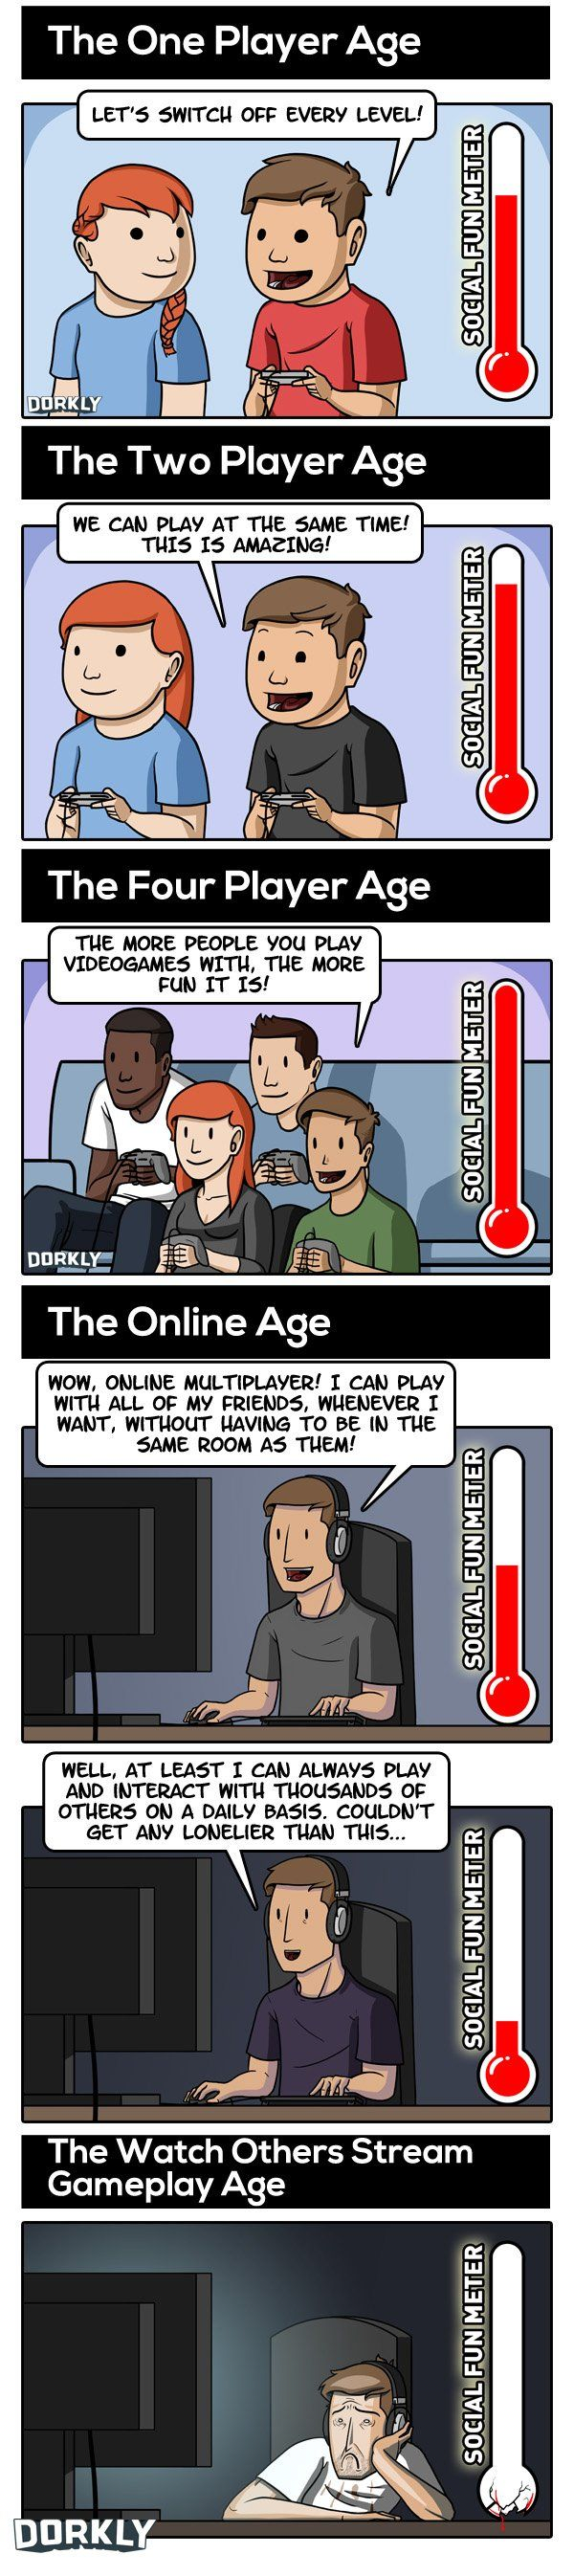 The Ages Of Multiplayer Video Games Funny Funny Games Dorkly Comics